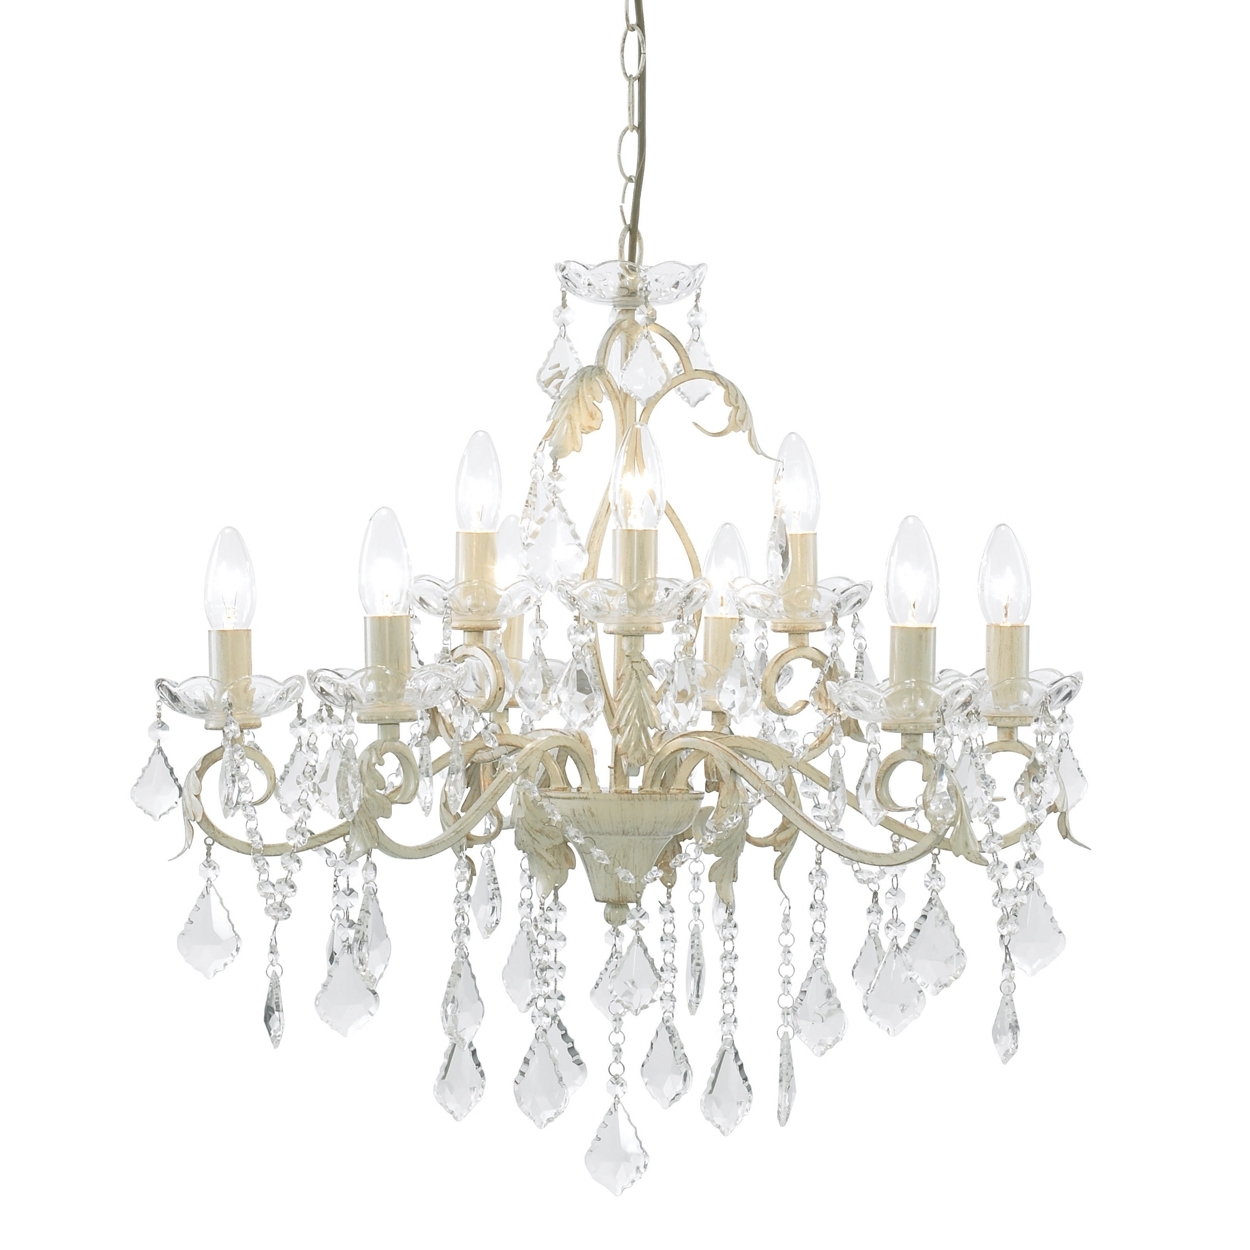 Well Liked Cream Gold Chandelier Regarding Cream And Gold Crystal Chandelier Crystal Chandelier Ideas For (View 4 of 15)